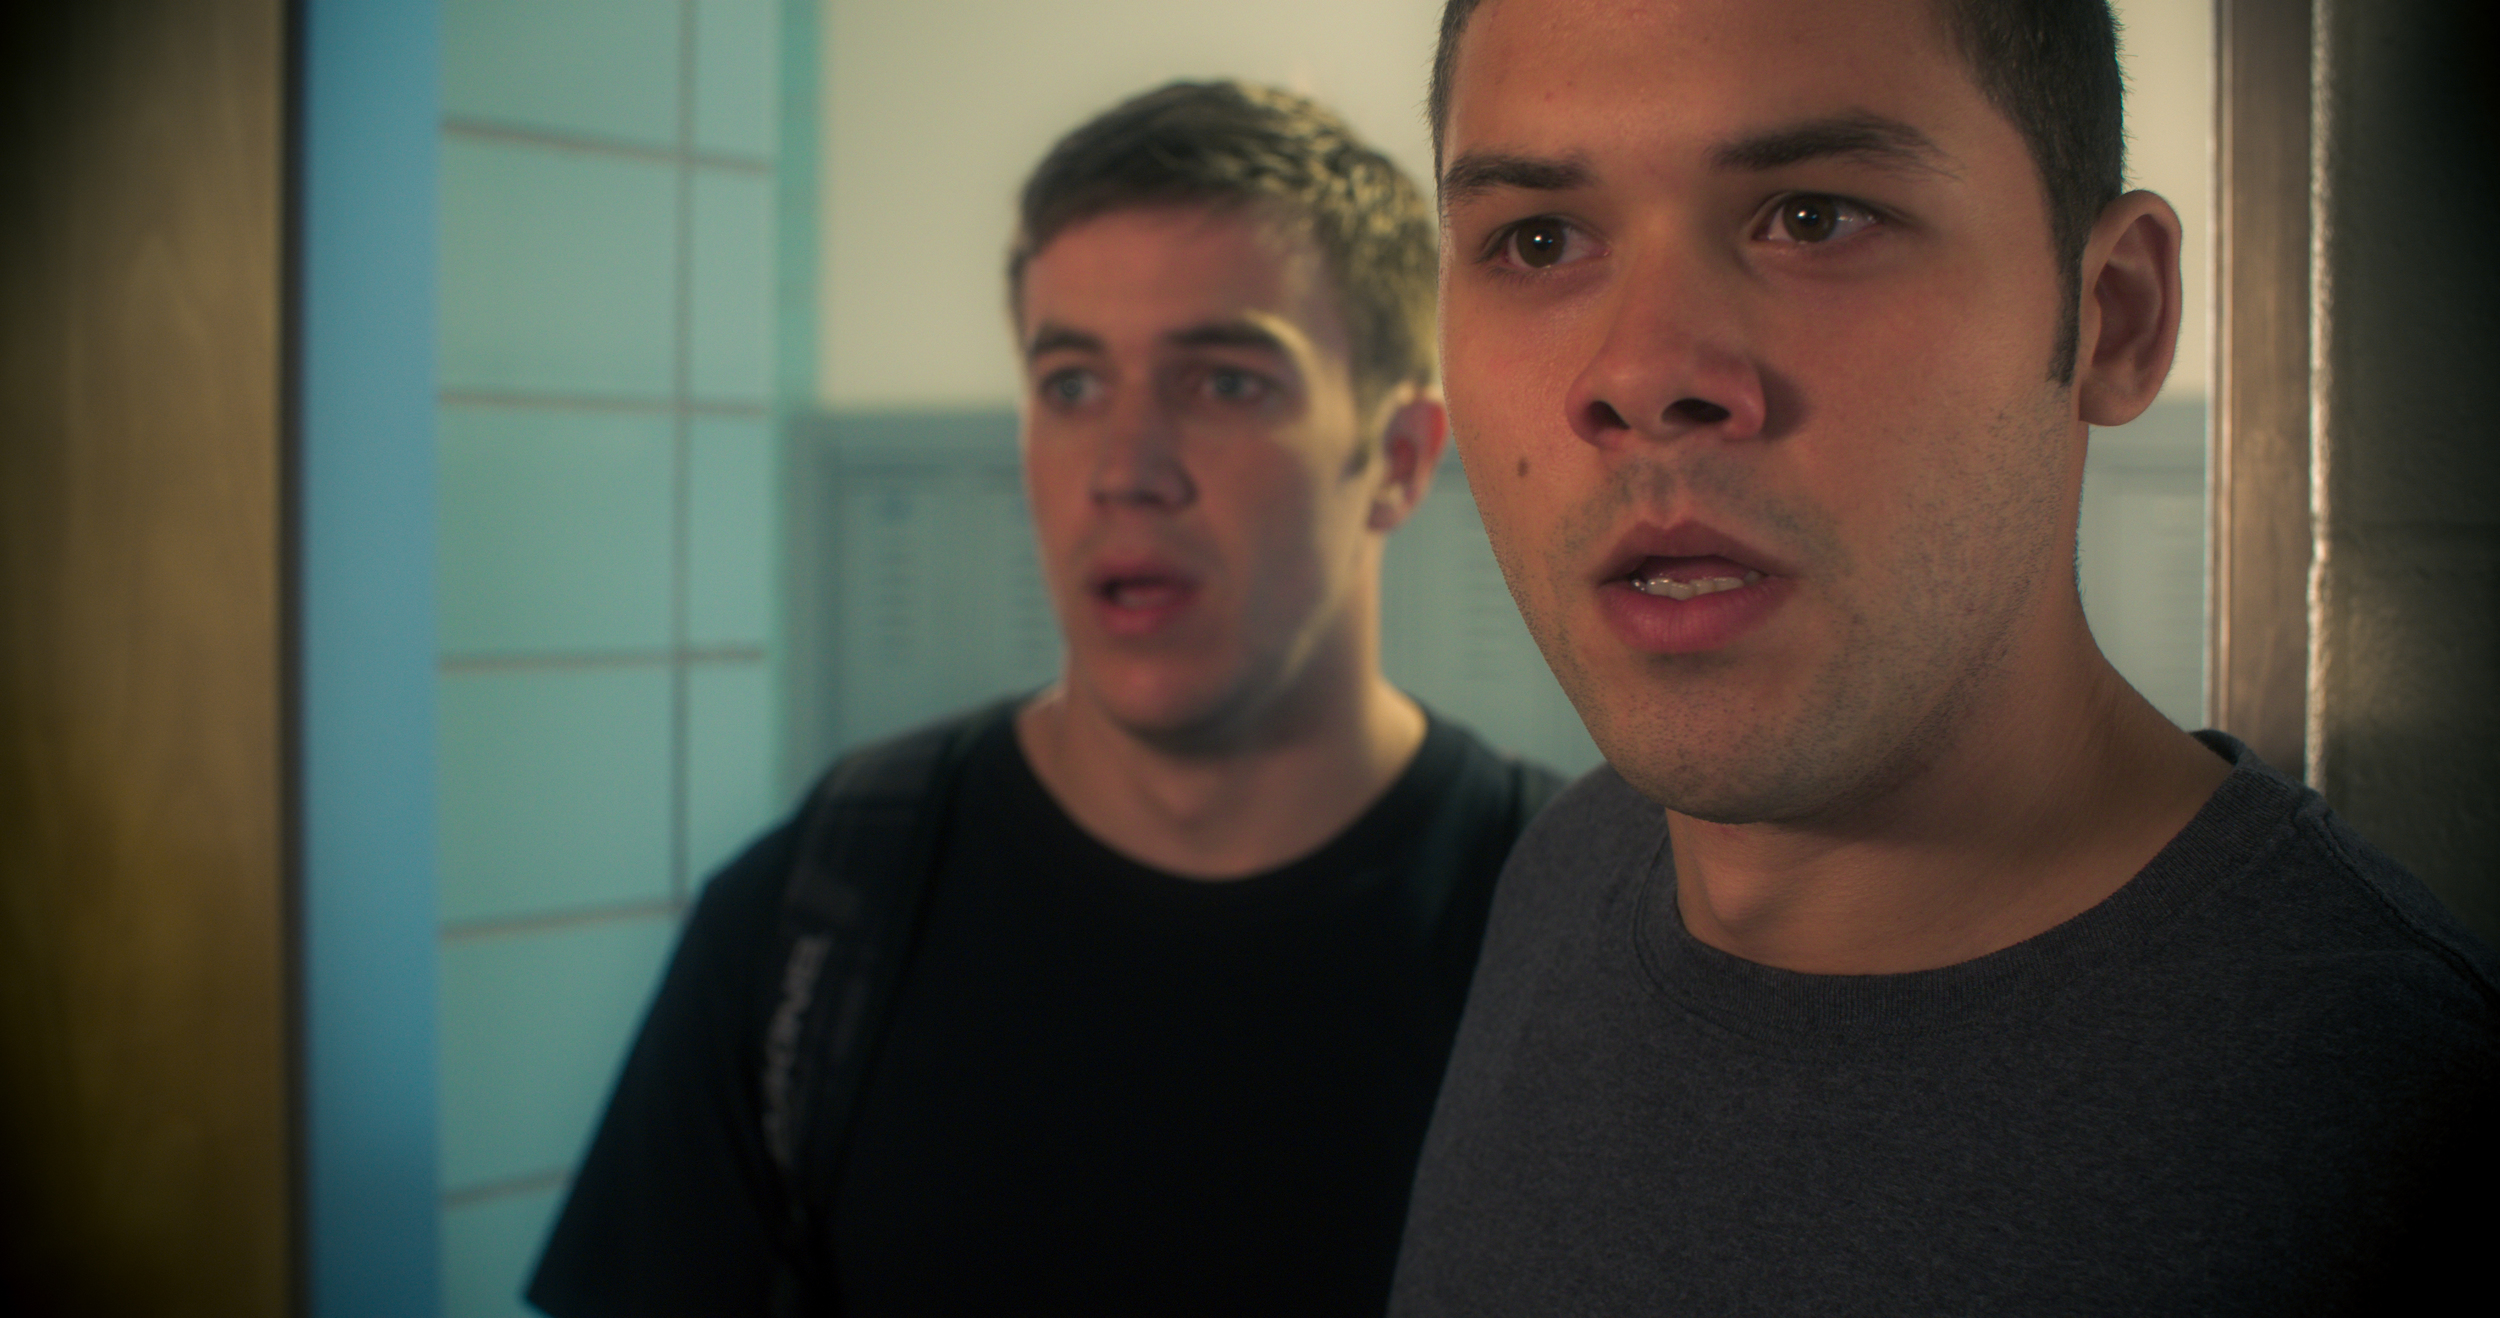 Tim (on the right played by Andrew Casanova) watches the World Trade Center collapse on 9/11.  Ben (on the left played by Tyler McElroy), realizes that Tim's father was still inside.  The two best friends both vow to enlist and fight in the War on Terror.